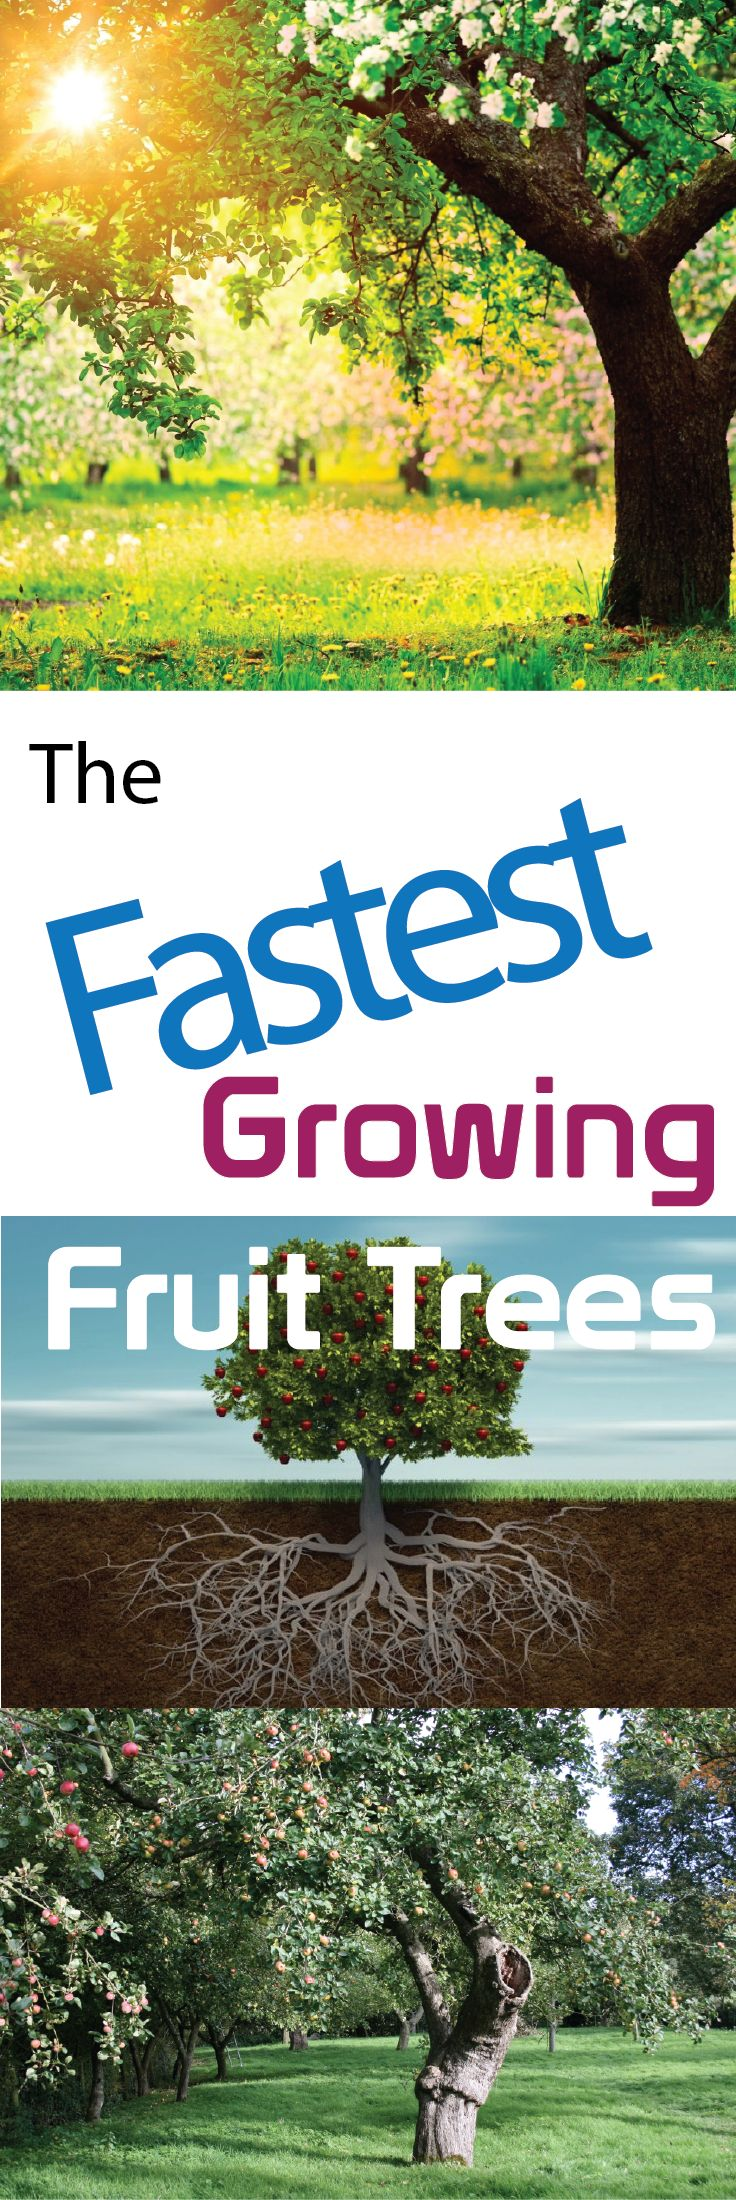 fastest growing fruit trees